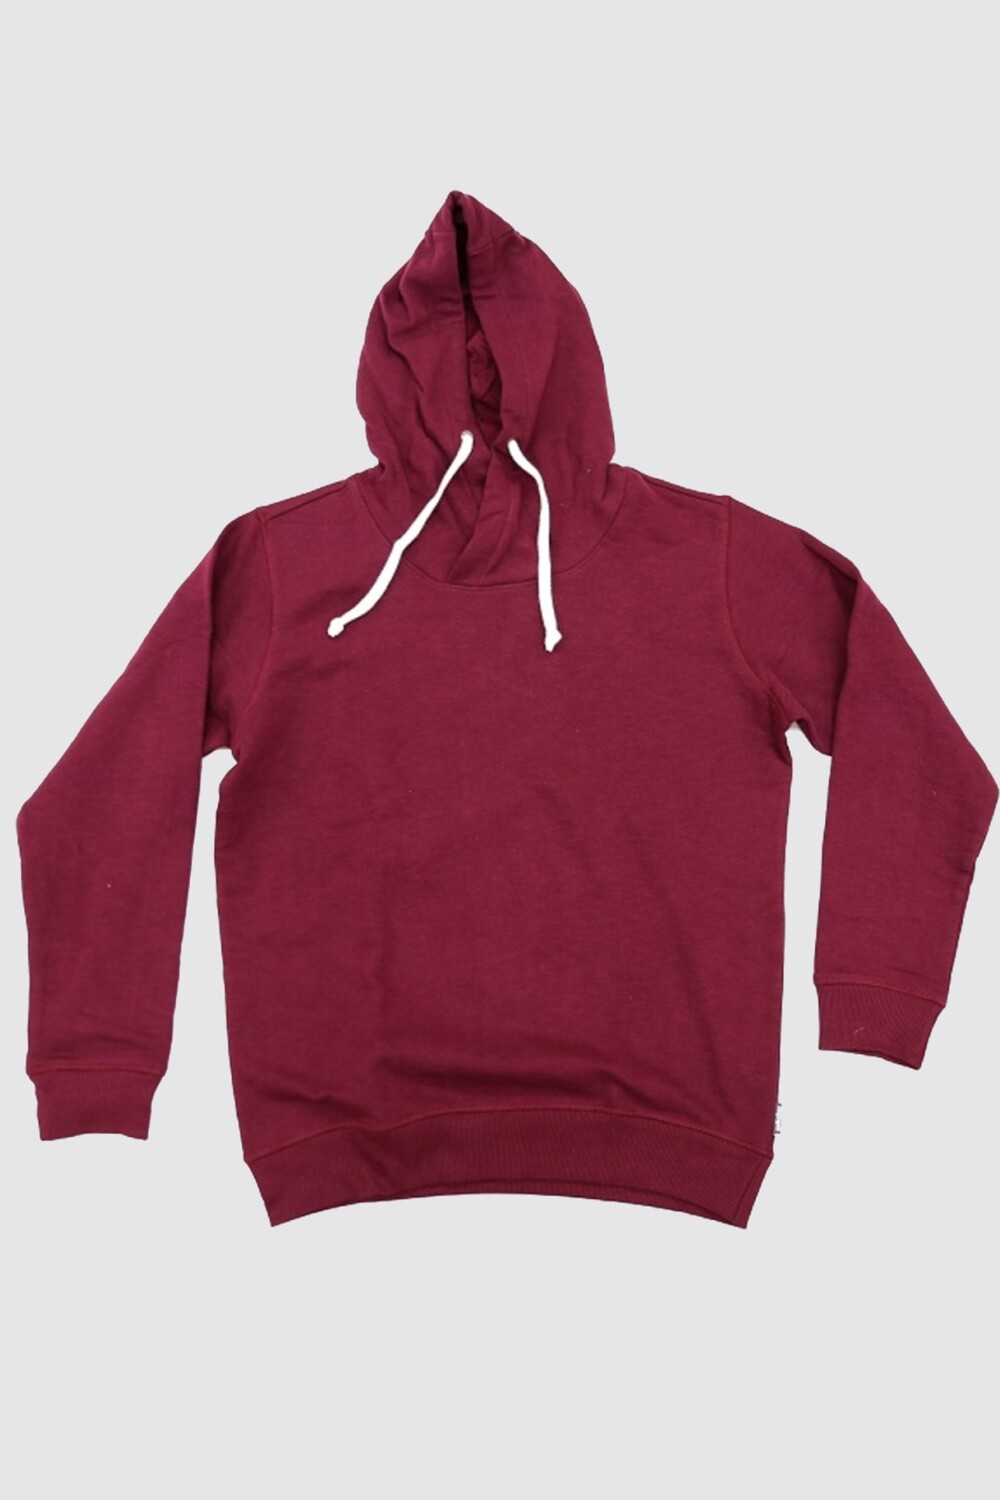 Switcher Hoodie Than